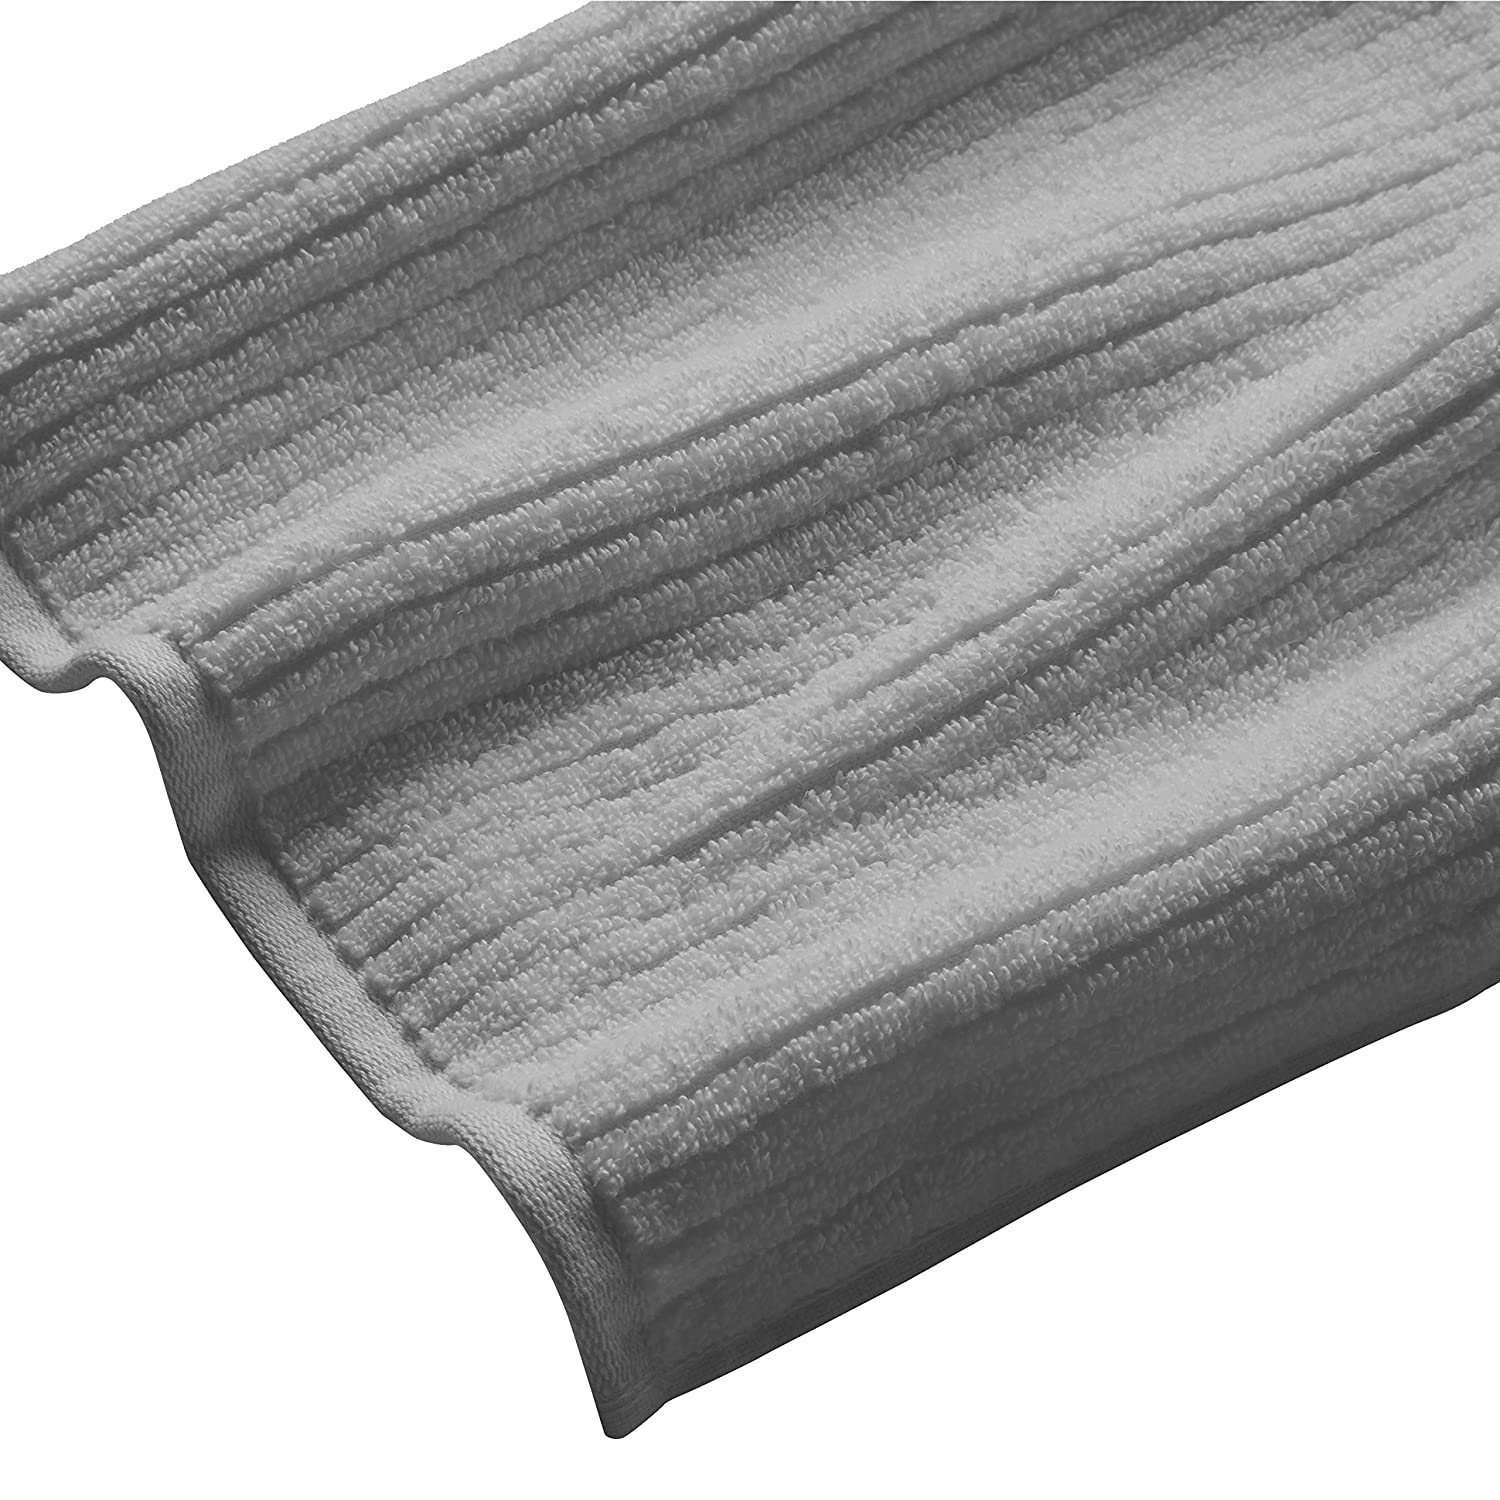 Alurri Hotel and Spa Like Set of 4 Large Hand Towels 16 x 28 Inches Cotton Grey